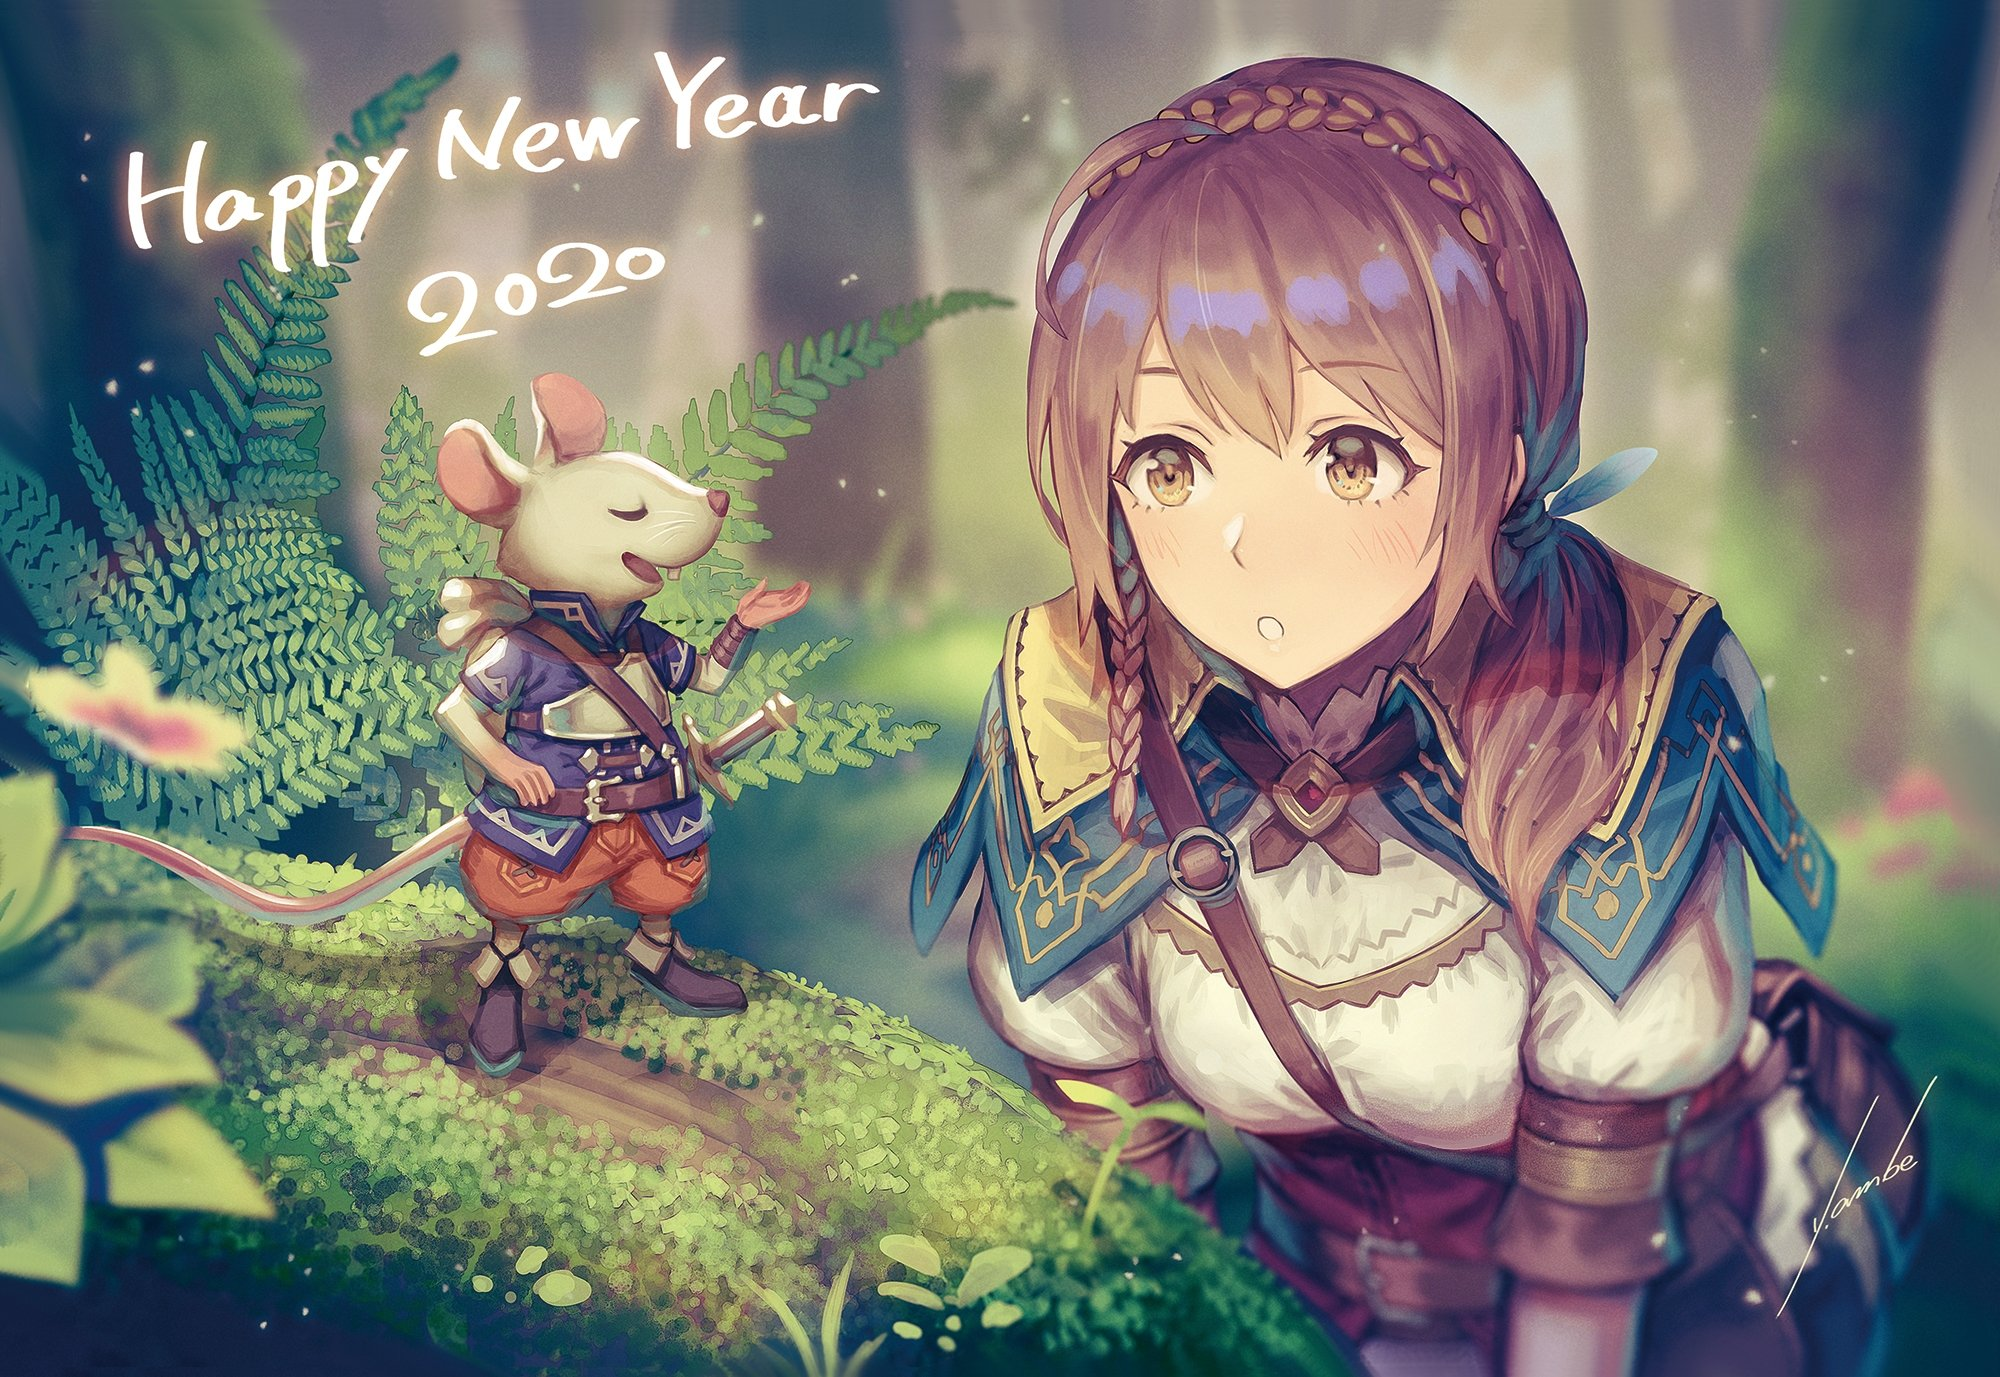 45] Happy New Year 2020 Anime Girl Wallpapers on WallpaperSafari 2000x1377